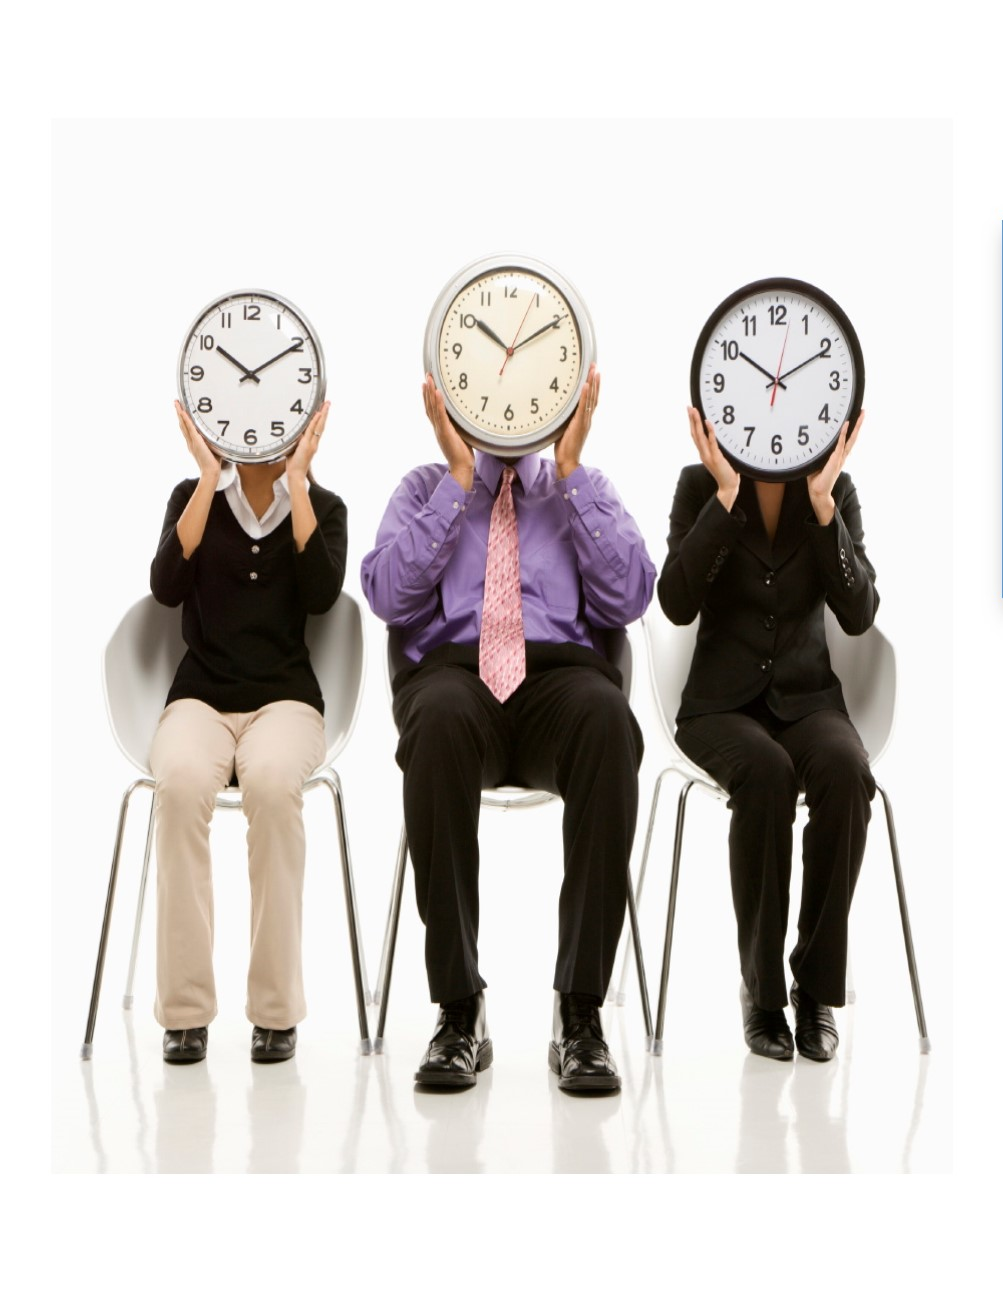 time management and nation building How to manage your time time management is an important skill to cultivate it can help you make the most out of each day, leading to success in areas like work and.